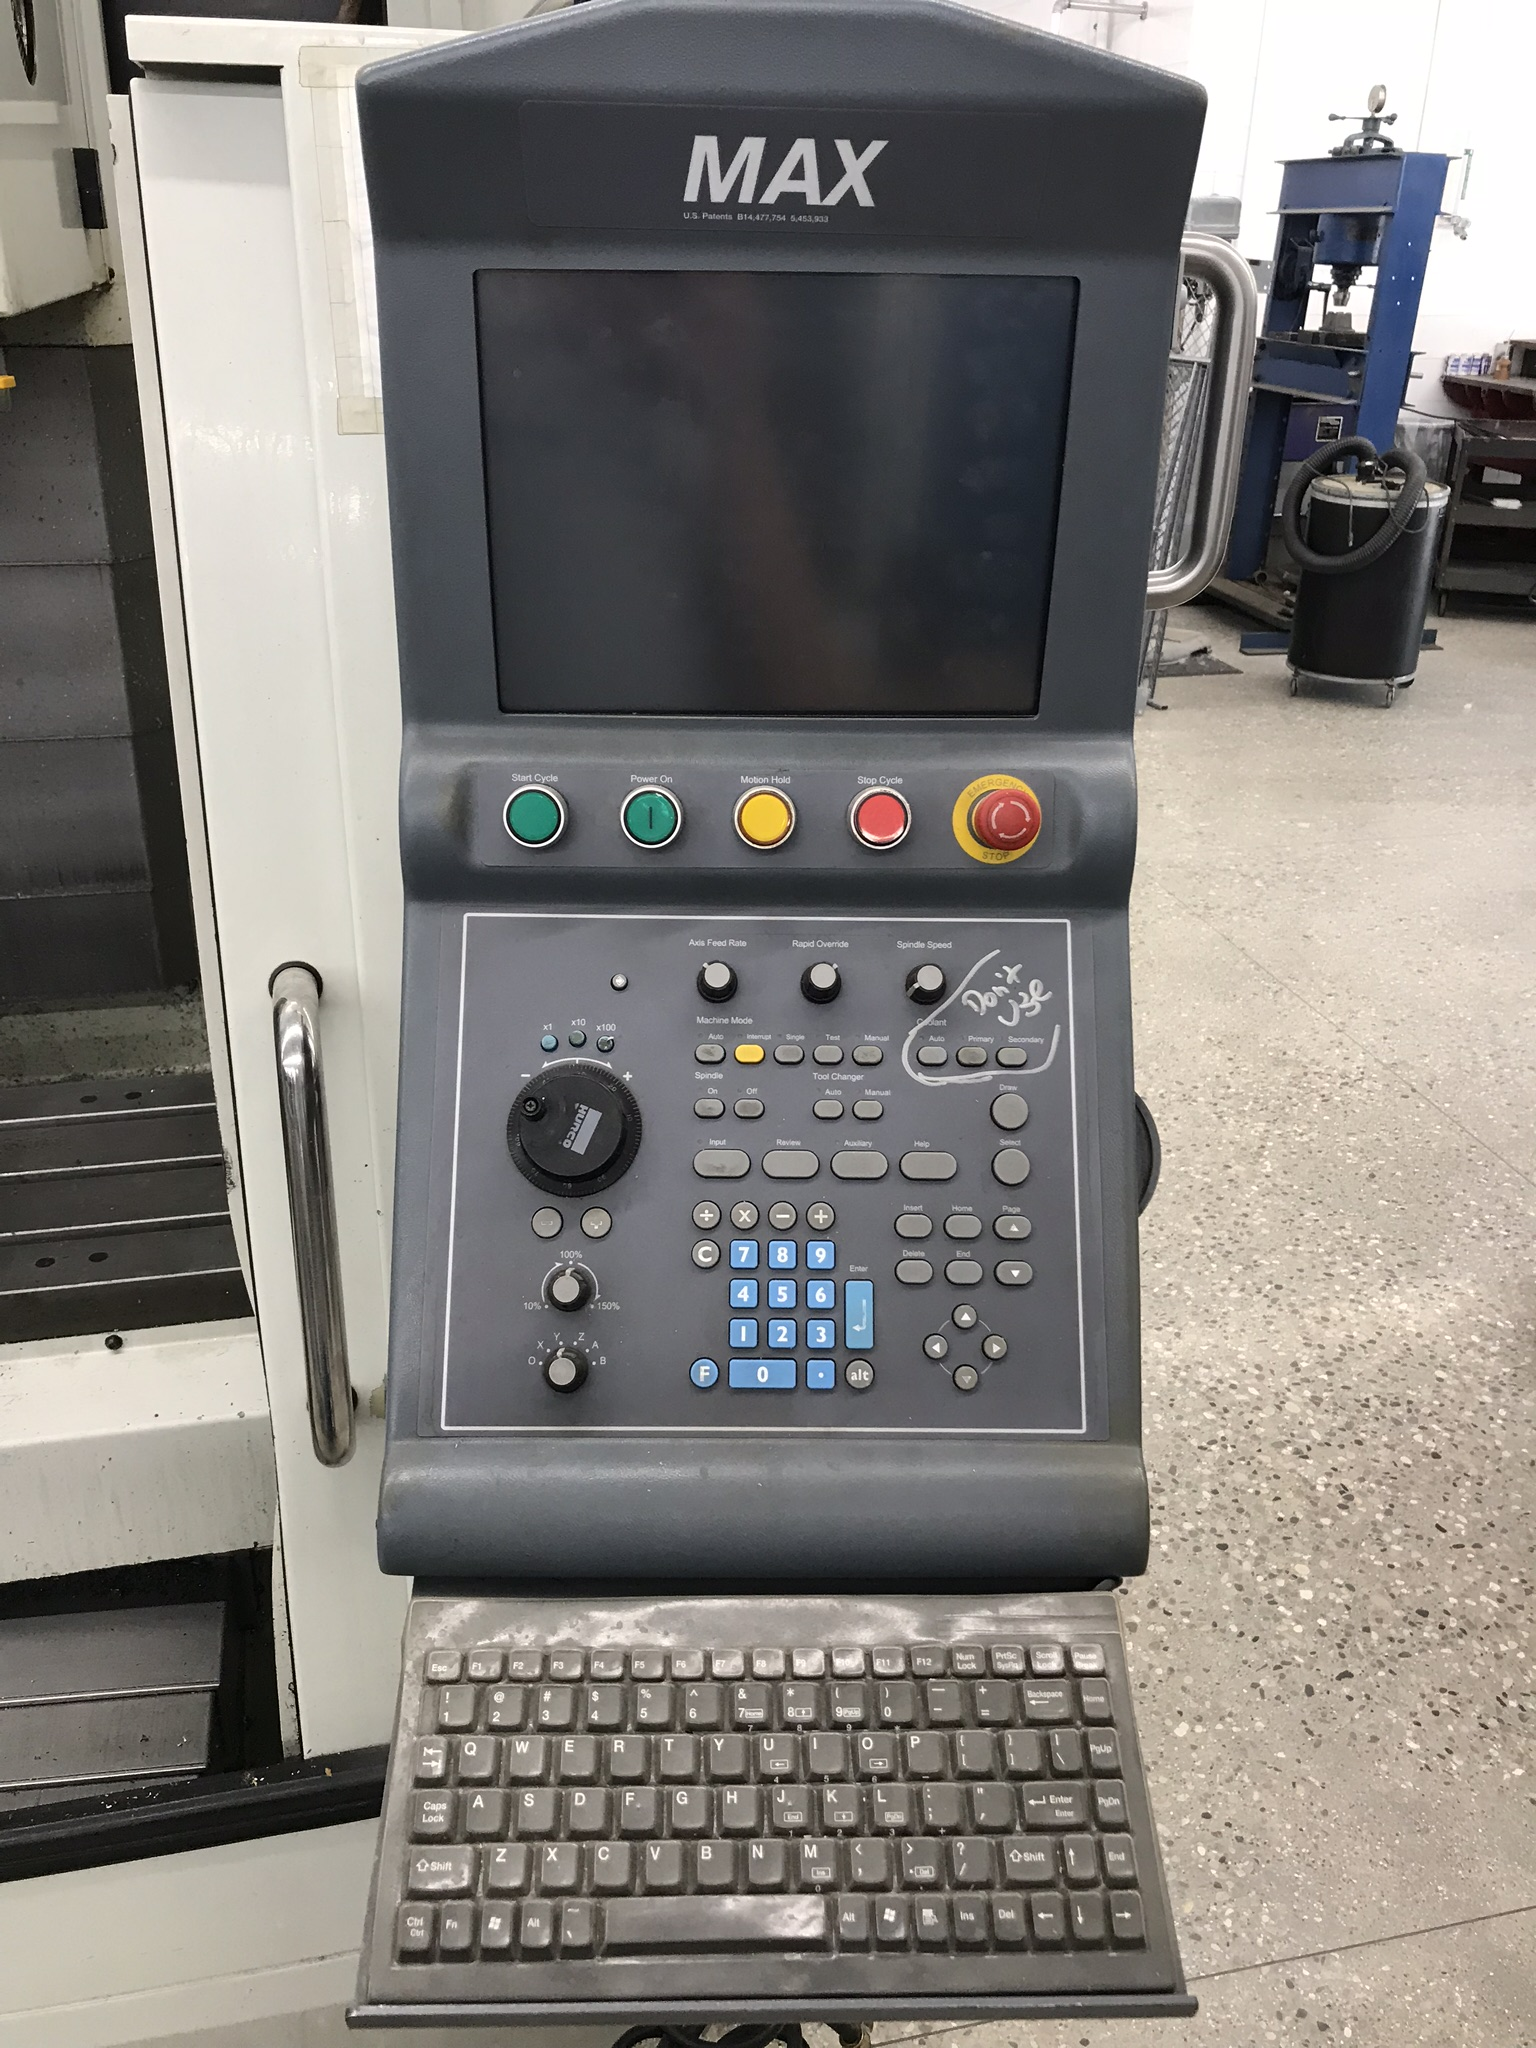 Hurco VM-1 CNC Vertical Machining Center, Spindle Recently Replaced, Approx 6,800 Hours, Max Control - Image 3 of 5